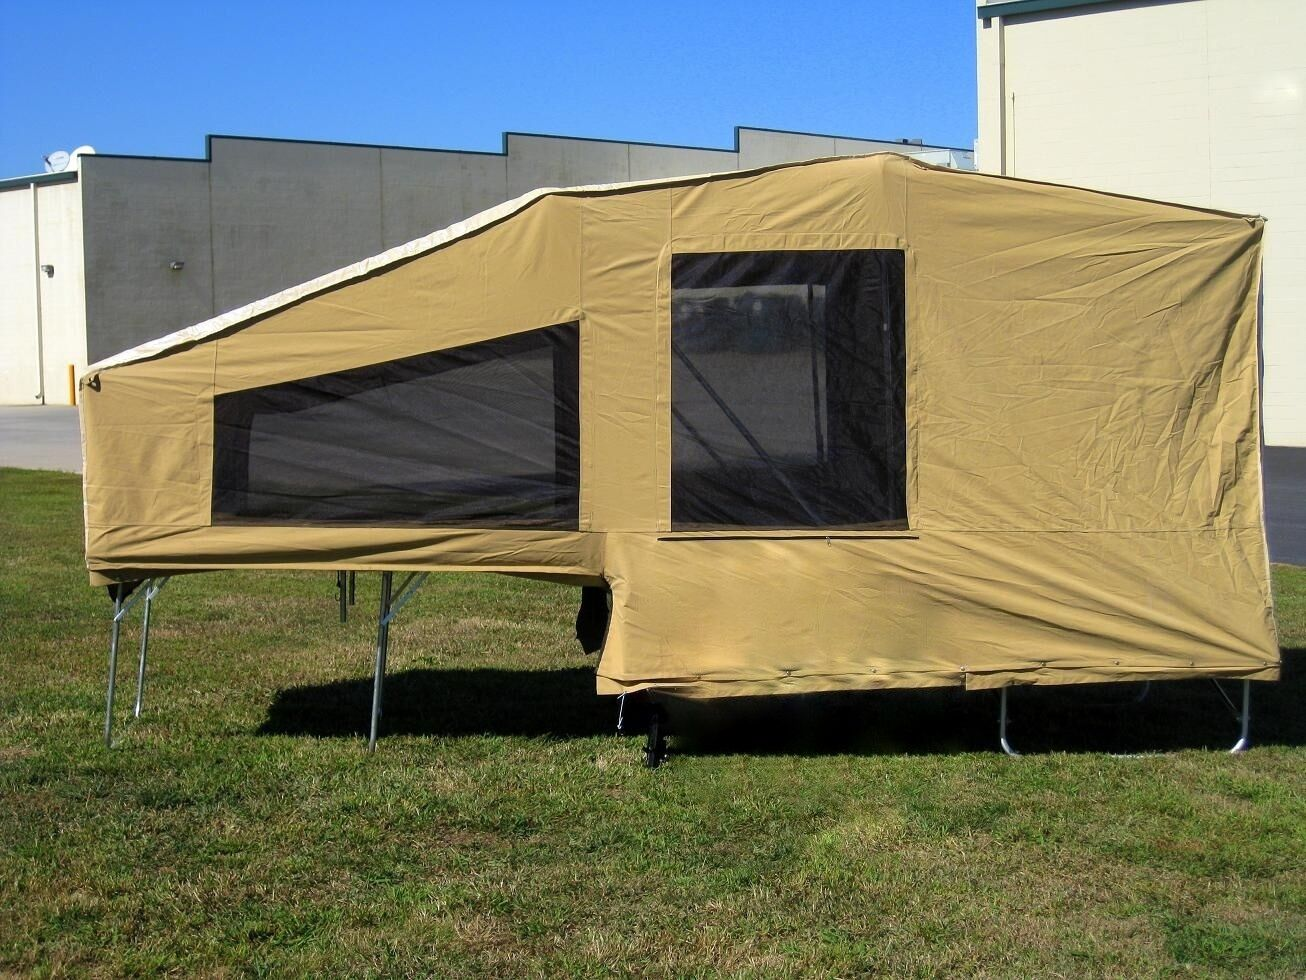 2013 Motorcycle Camping Trailer Pull Behind Camper Tow